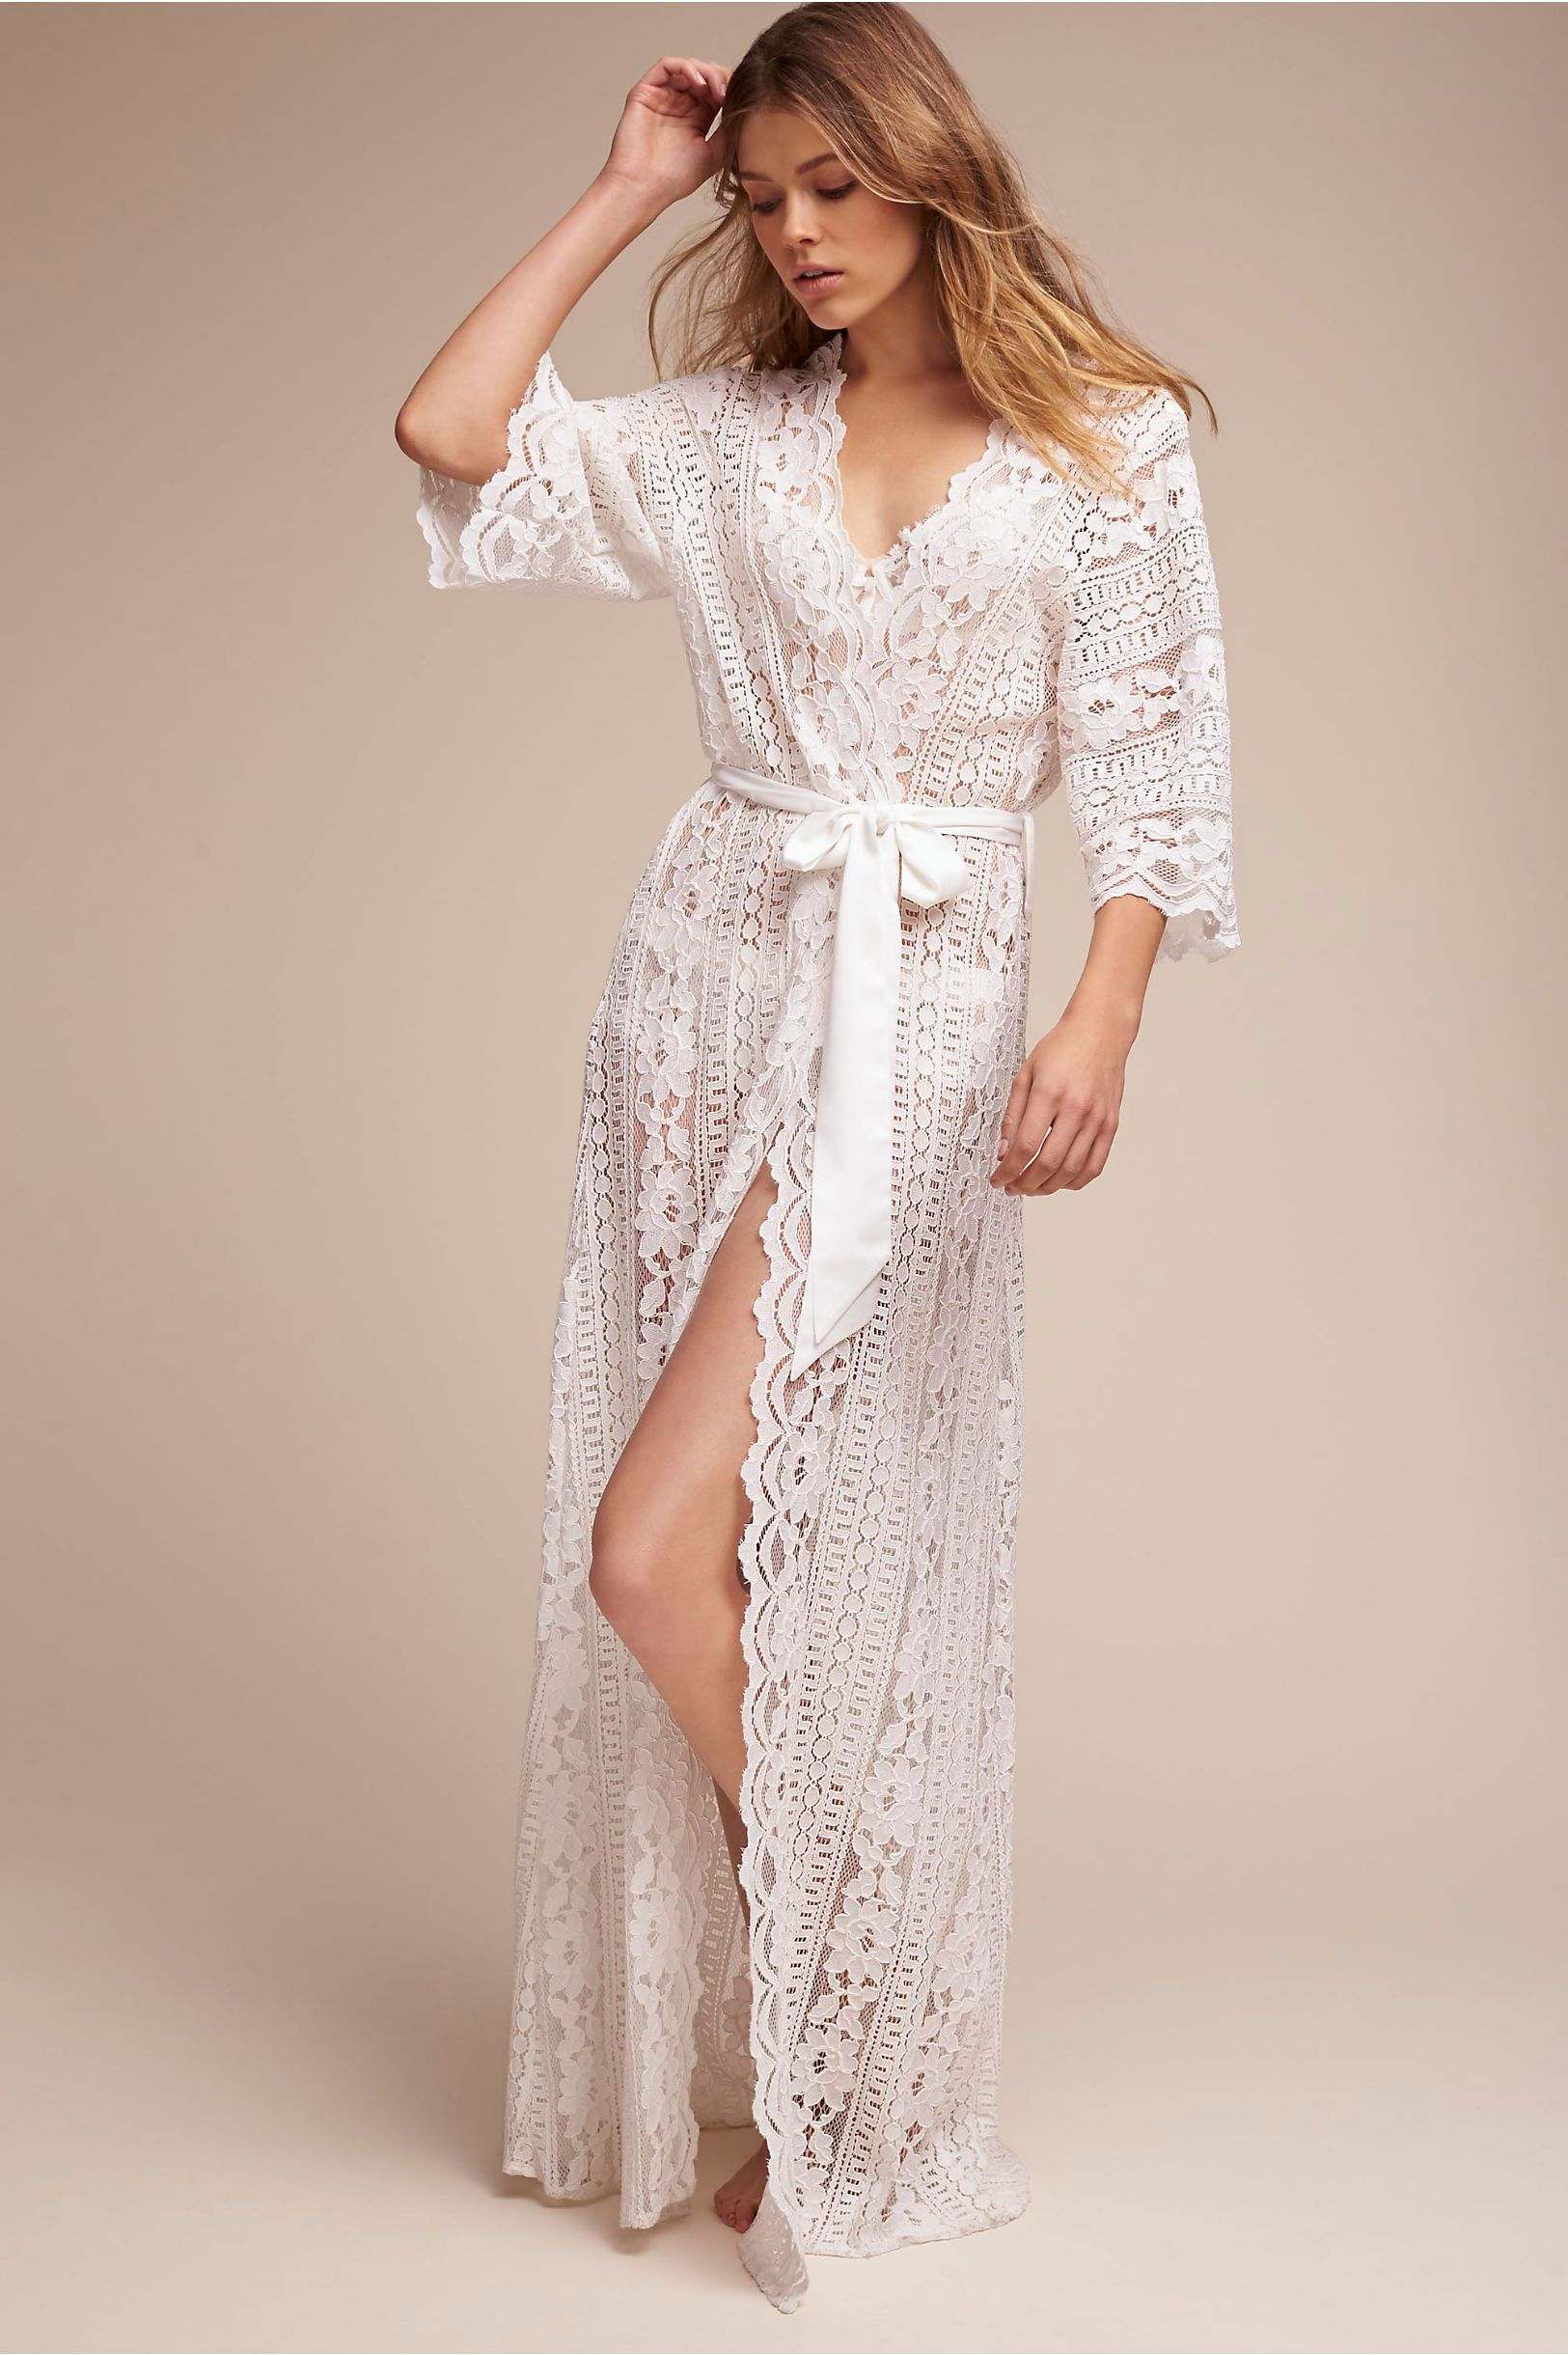 febb0fff7 BHLDN s Homebodii Willow Lace Robe in Ivory